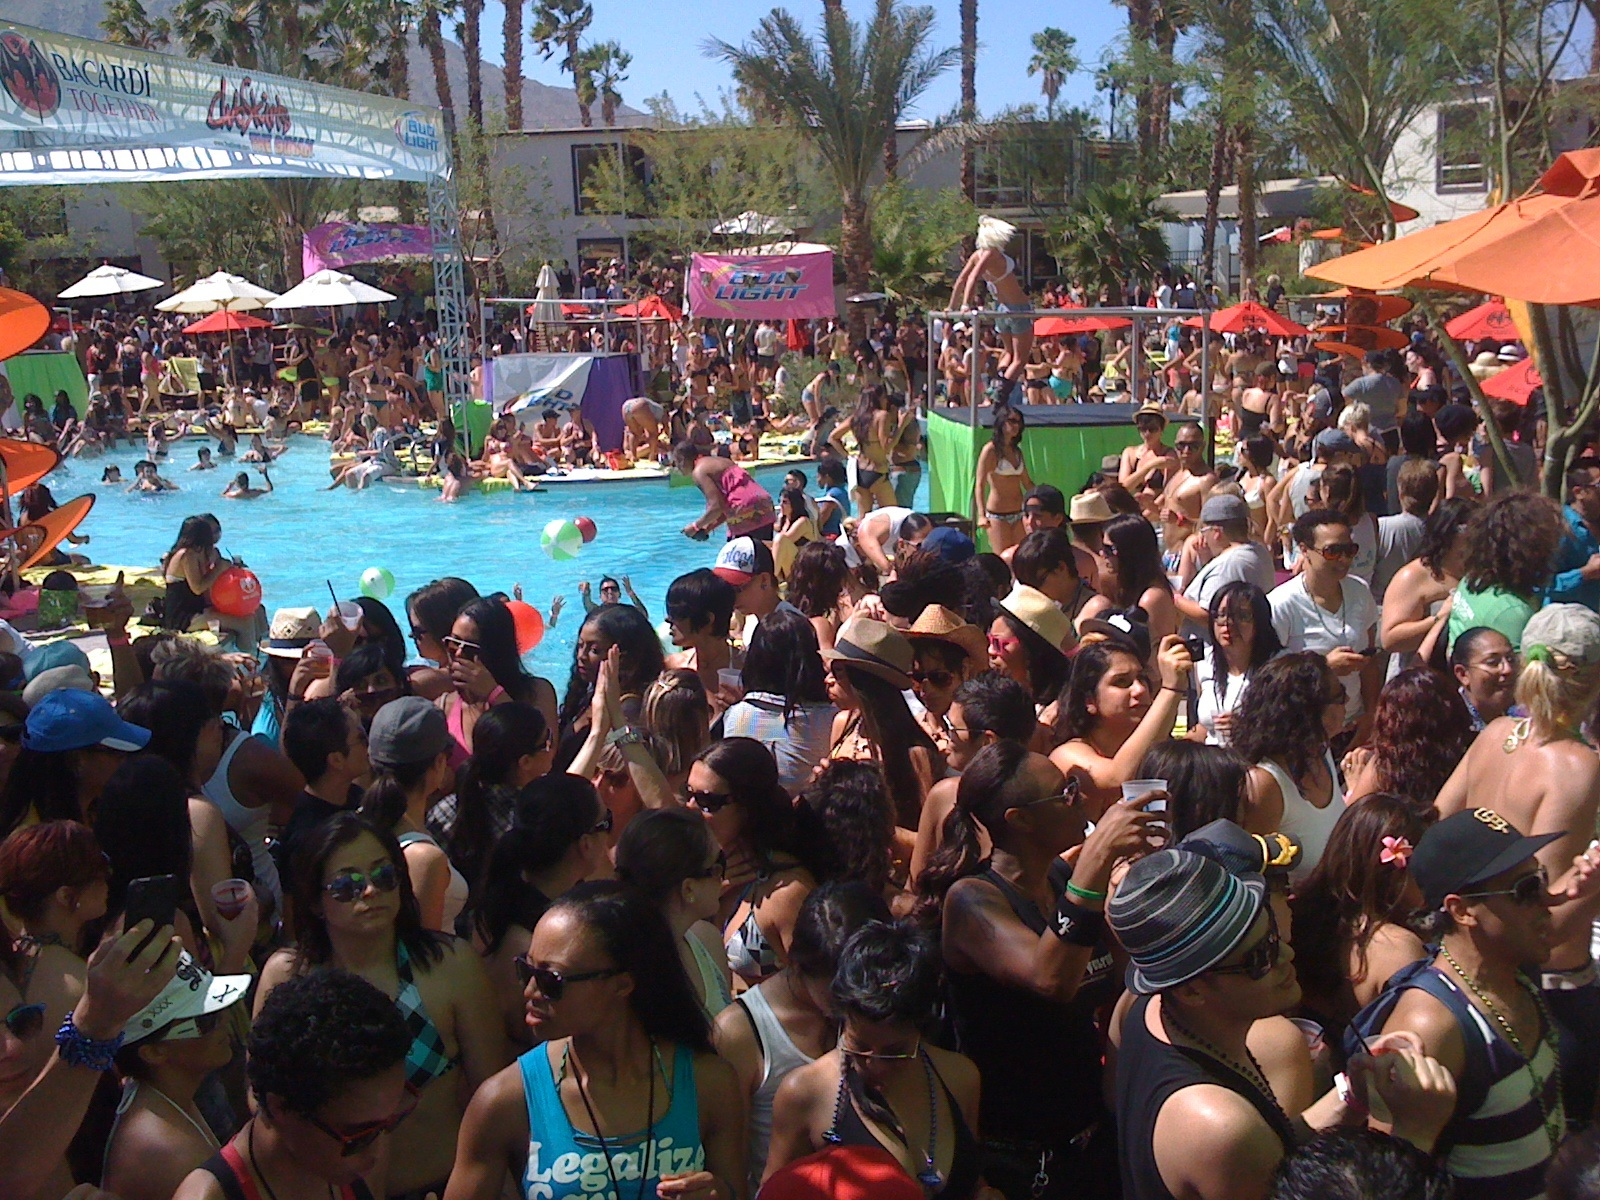 File:Pool Party 2011.jpg - Wikimedia Commons